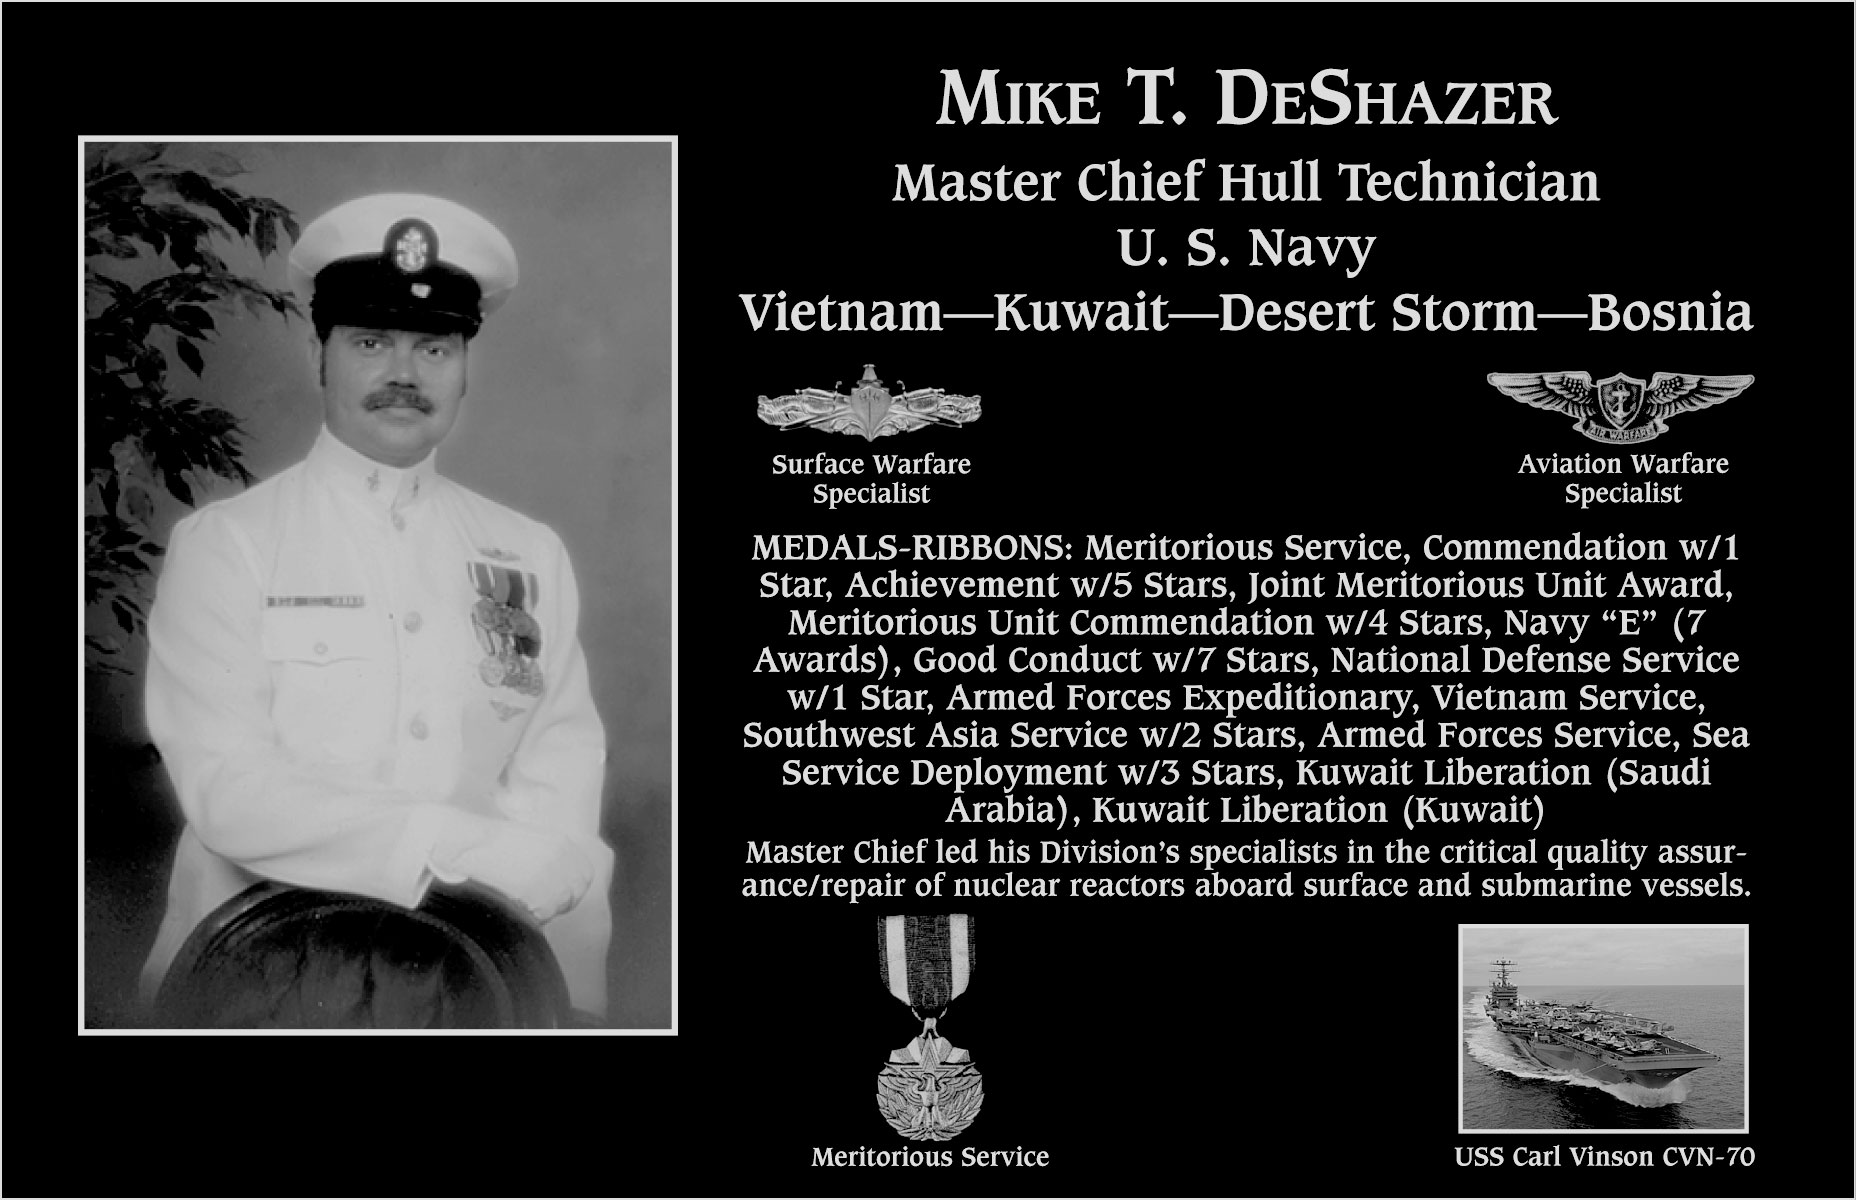 Mike T. DeShazer